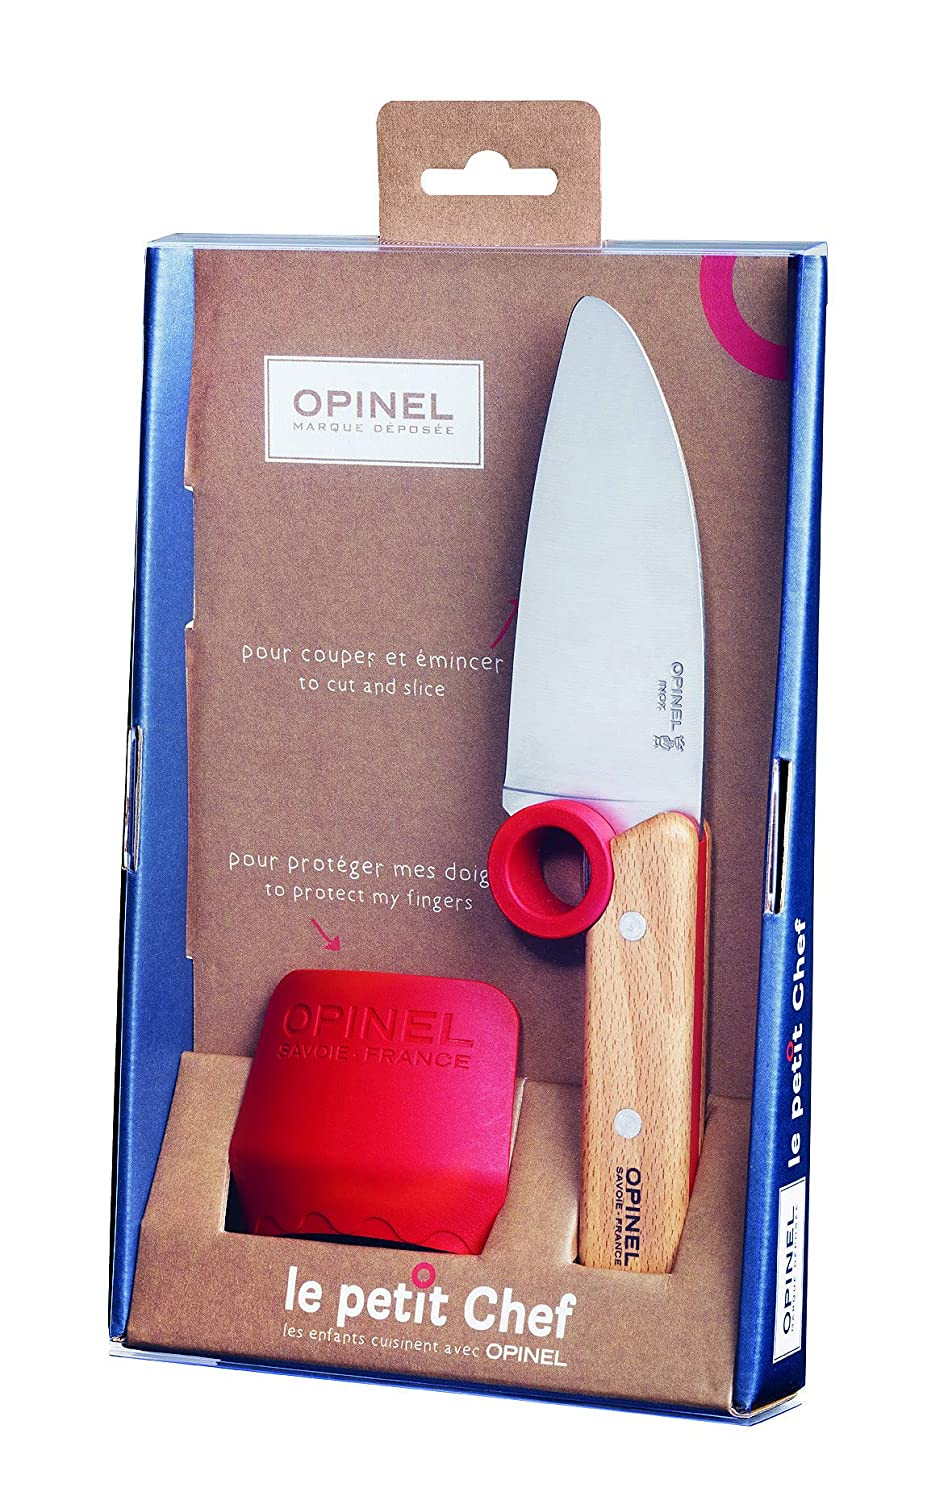 Opinel Le Petit Chef Box set (2 Piece Set) Educational Cooking Equipment for Kids with Stainless Steel Chef Knife and Finger Guard